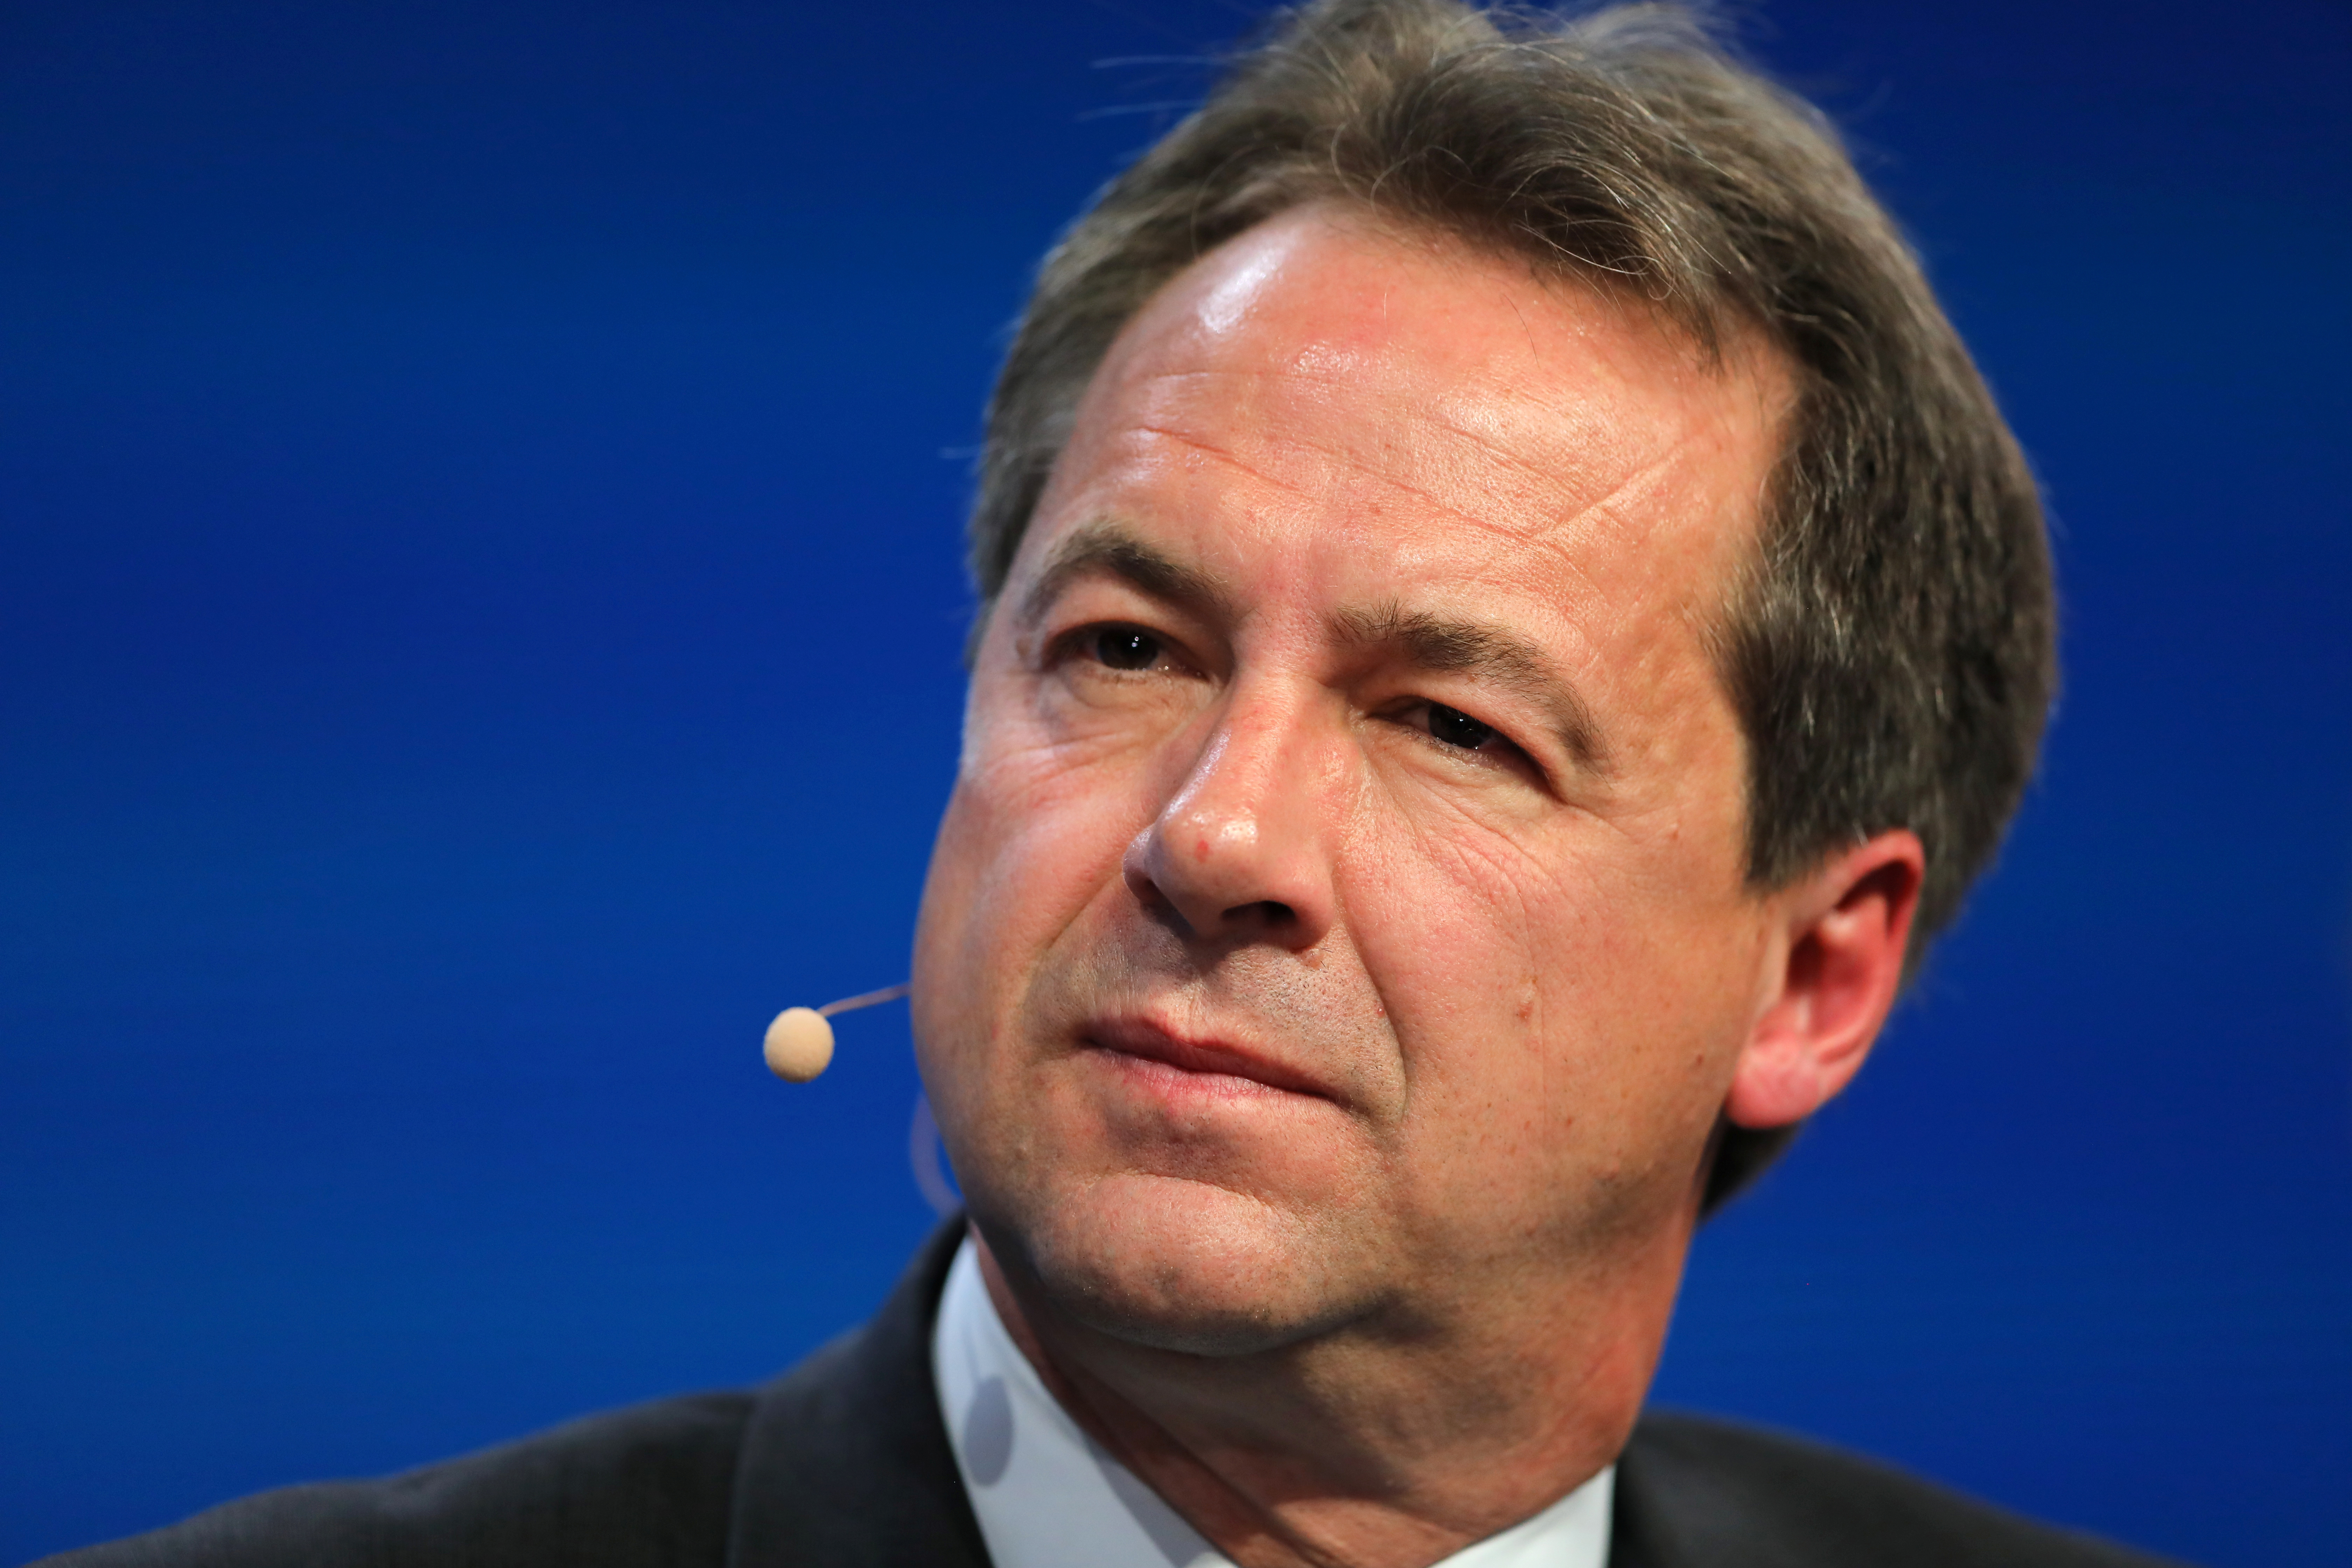 Steve Bullock, Governor of Montana, speaks during the Milken Institute Global Conference in Beverly Hills, California, U.S., May 1, 2017. REUTERS/Mike Blake